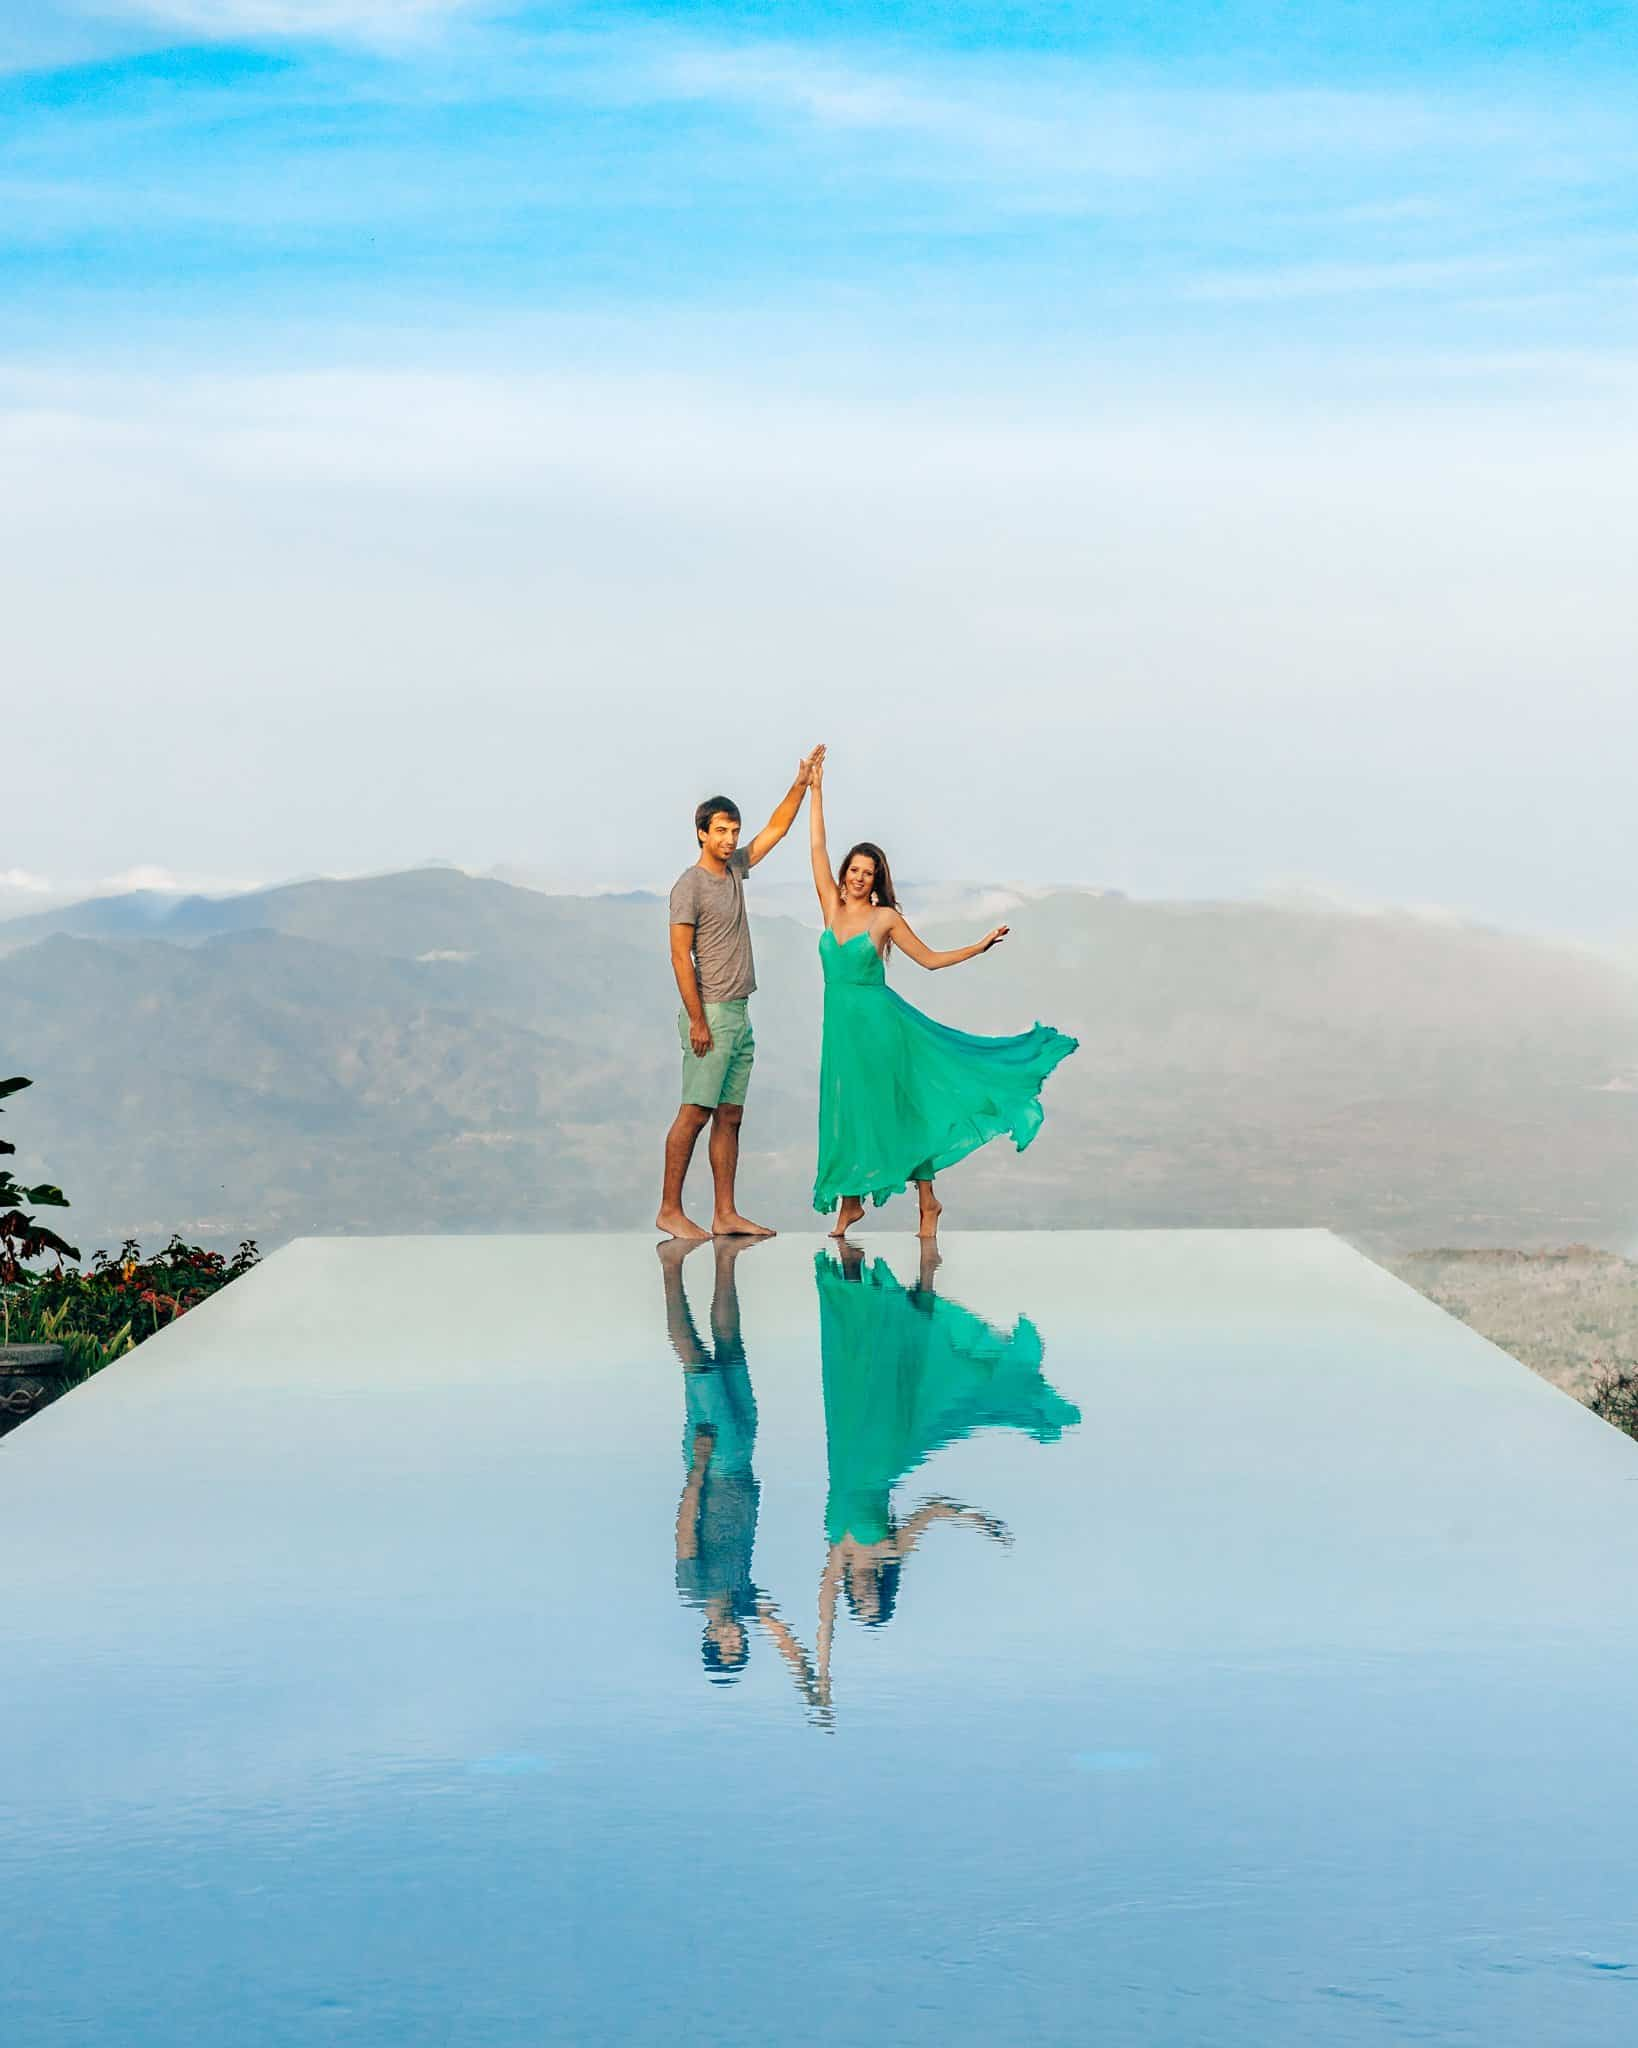 Bettina and Kyle at Munduk Moding Plantation Infinity Pool in Bali - The Next Trip